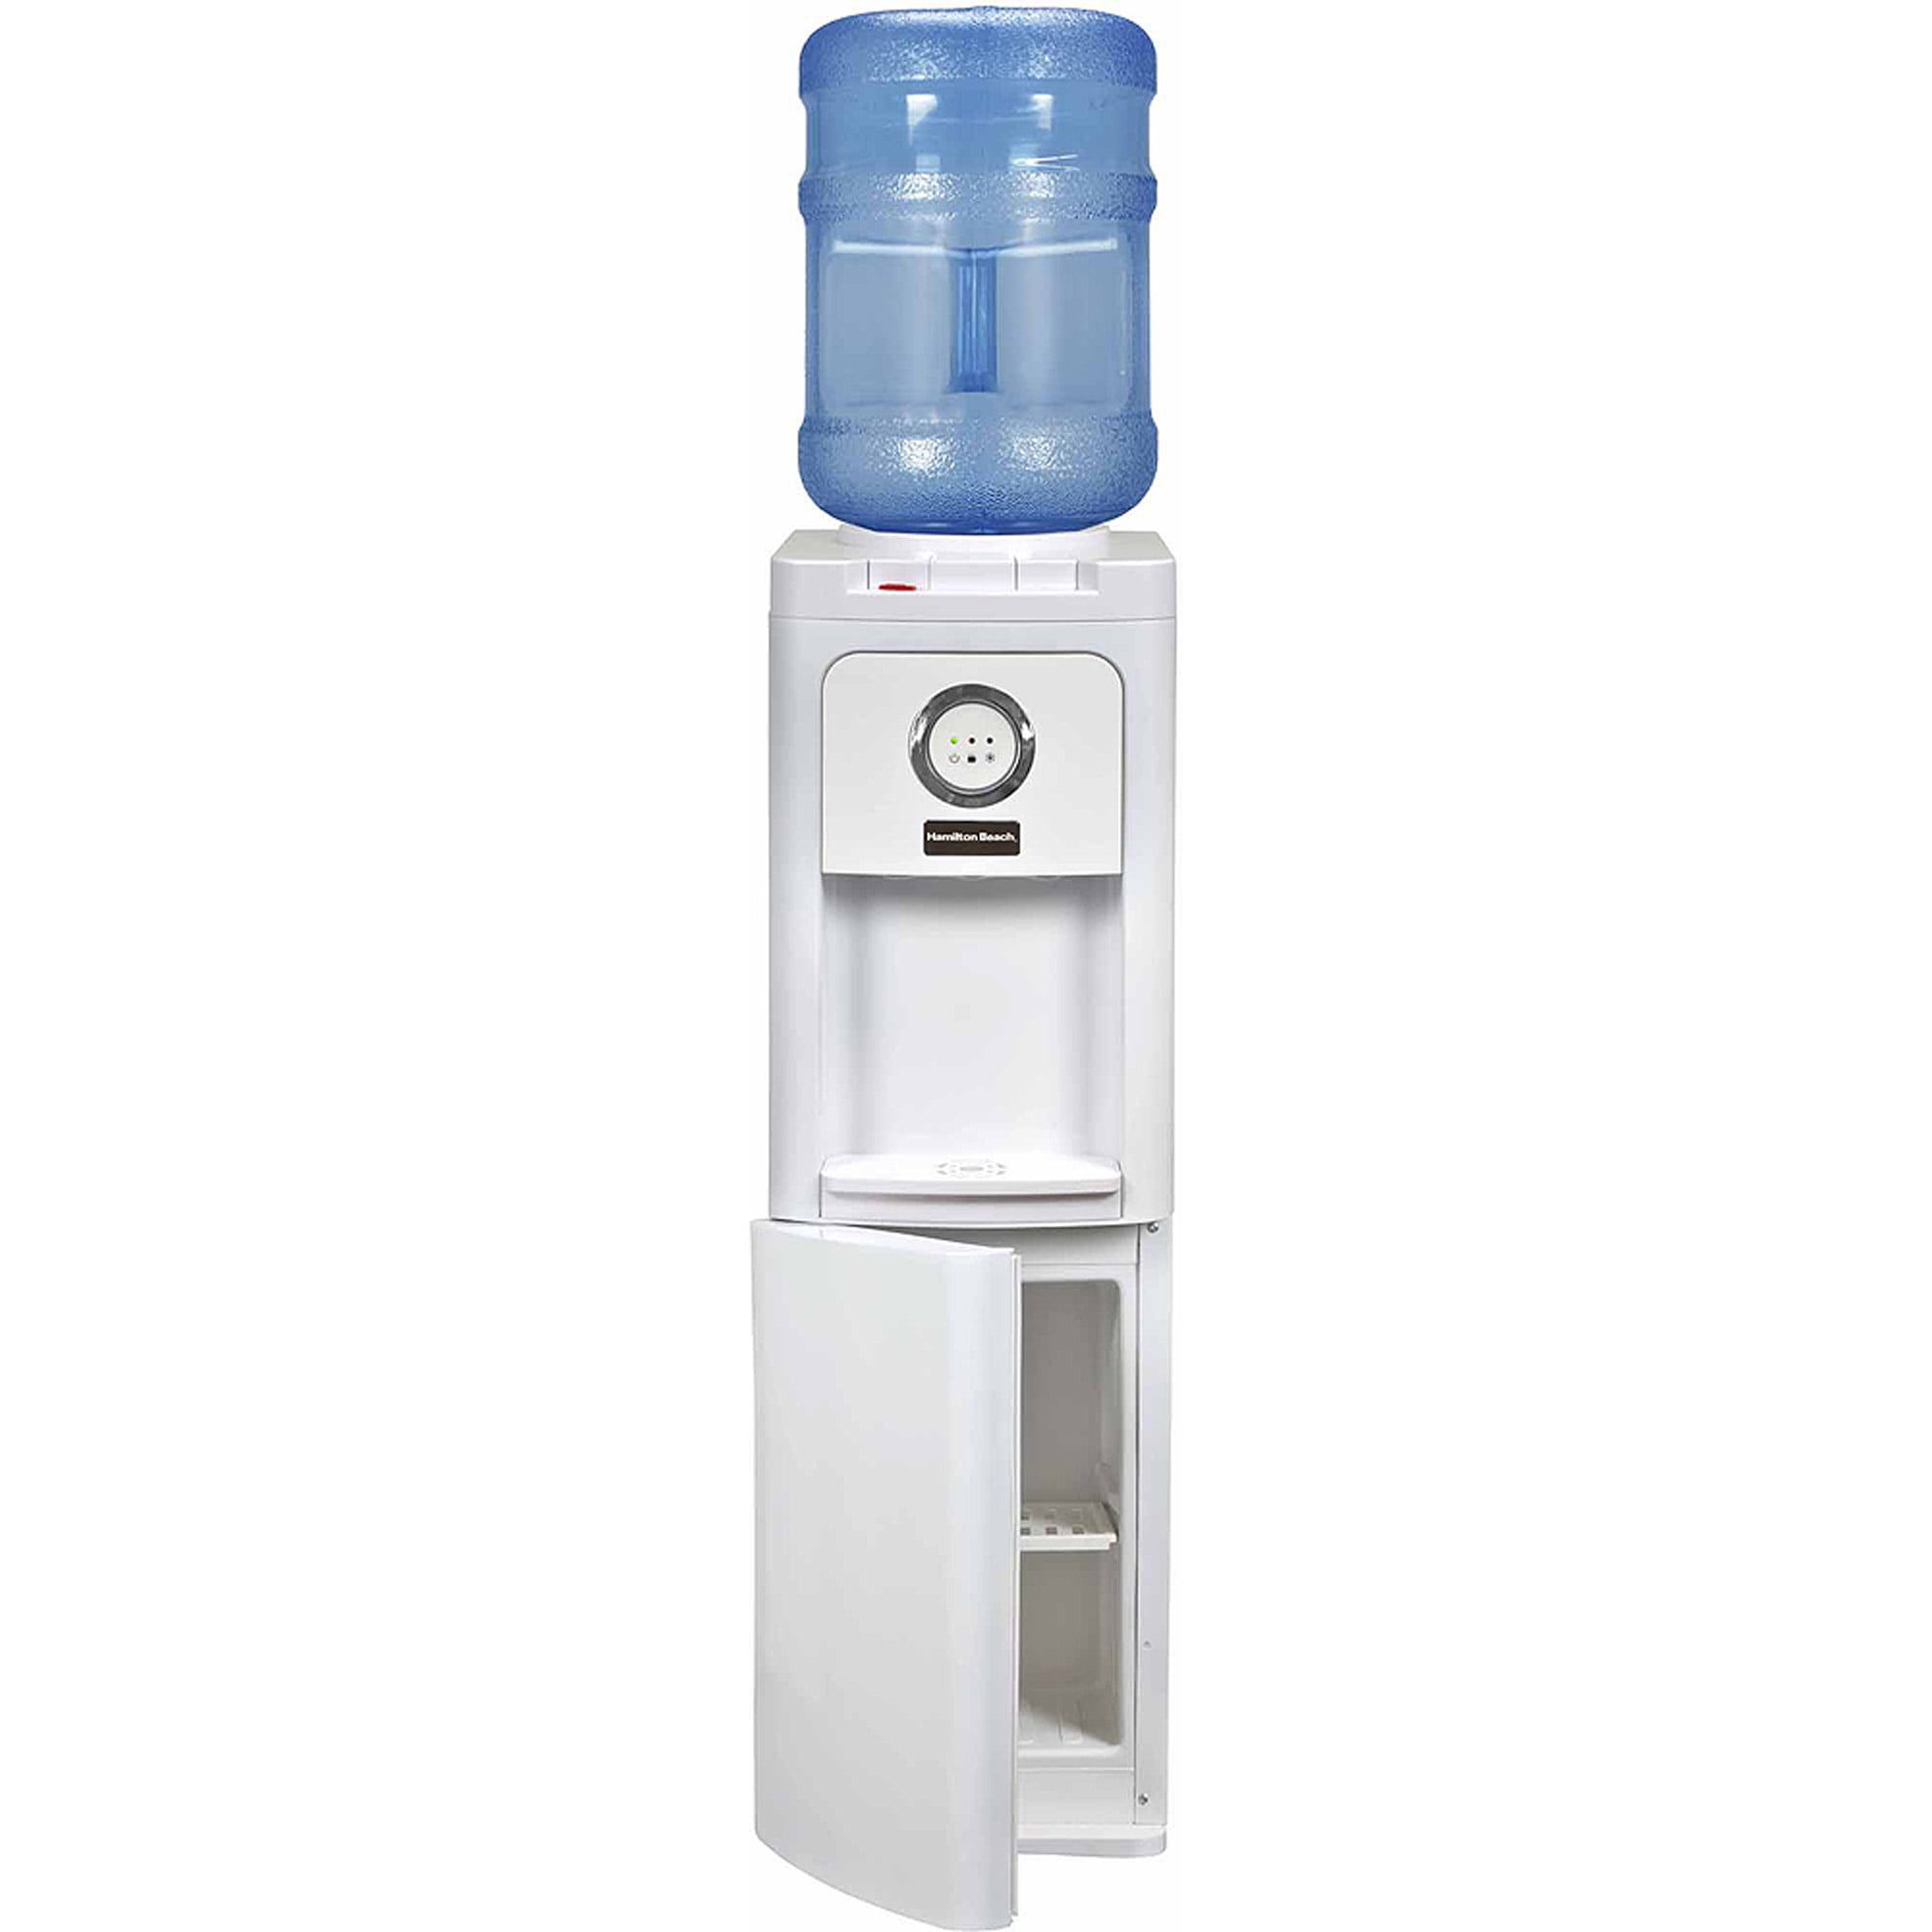 Water Cooler Storage #14 - Hamilton Beach TL-1-5W Top Loading Water Dispenser With Storage Cabinet,  Hot And Cold Temperatures, White - Walmart.com